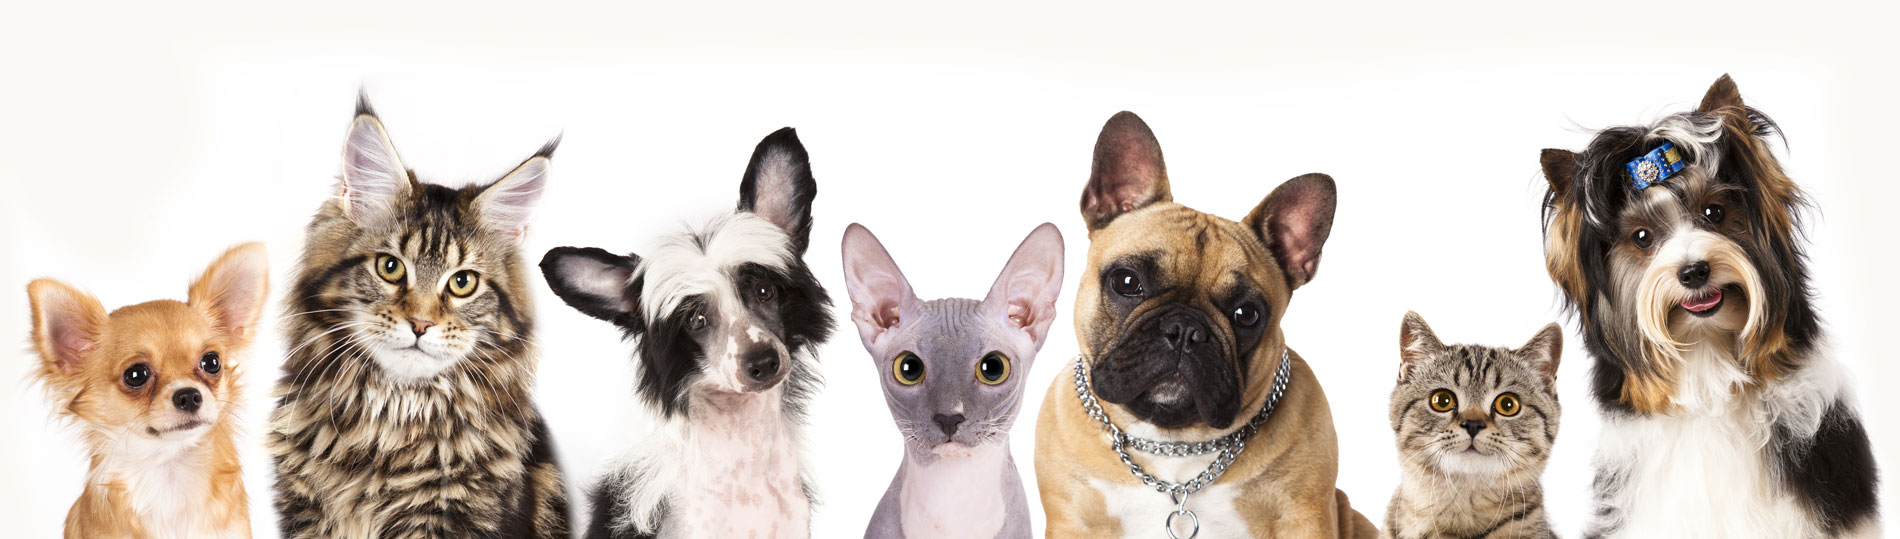 Pets waiting for their rabies vaccine